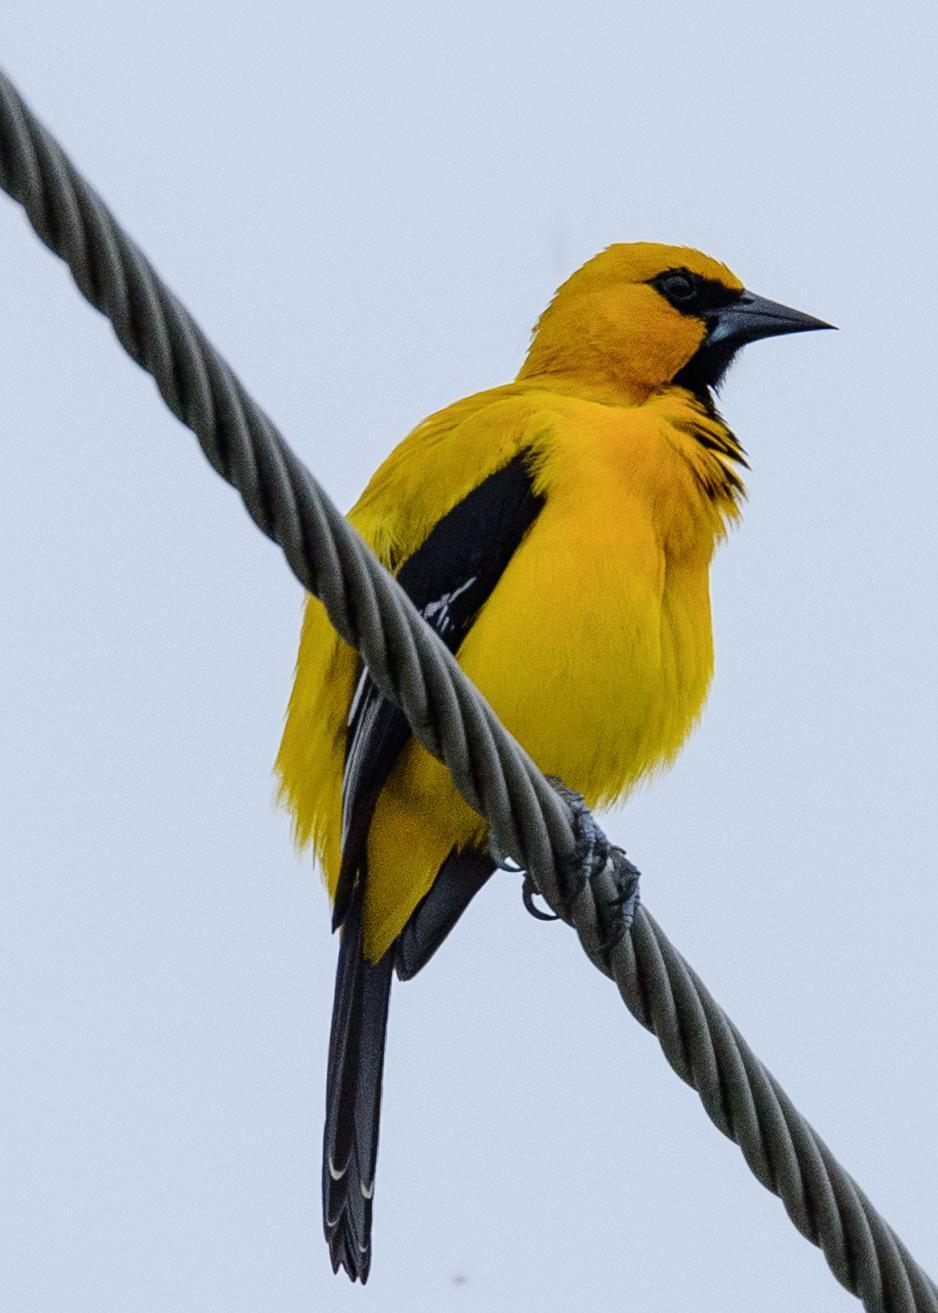 Yellow Oriole Photo by Keshava Mysore